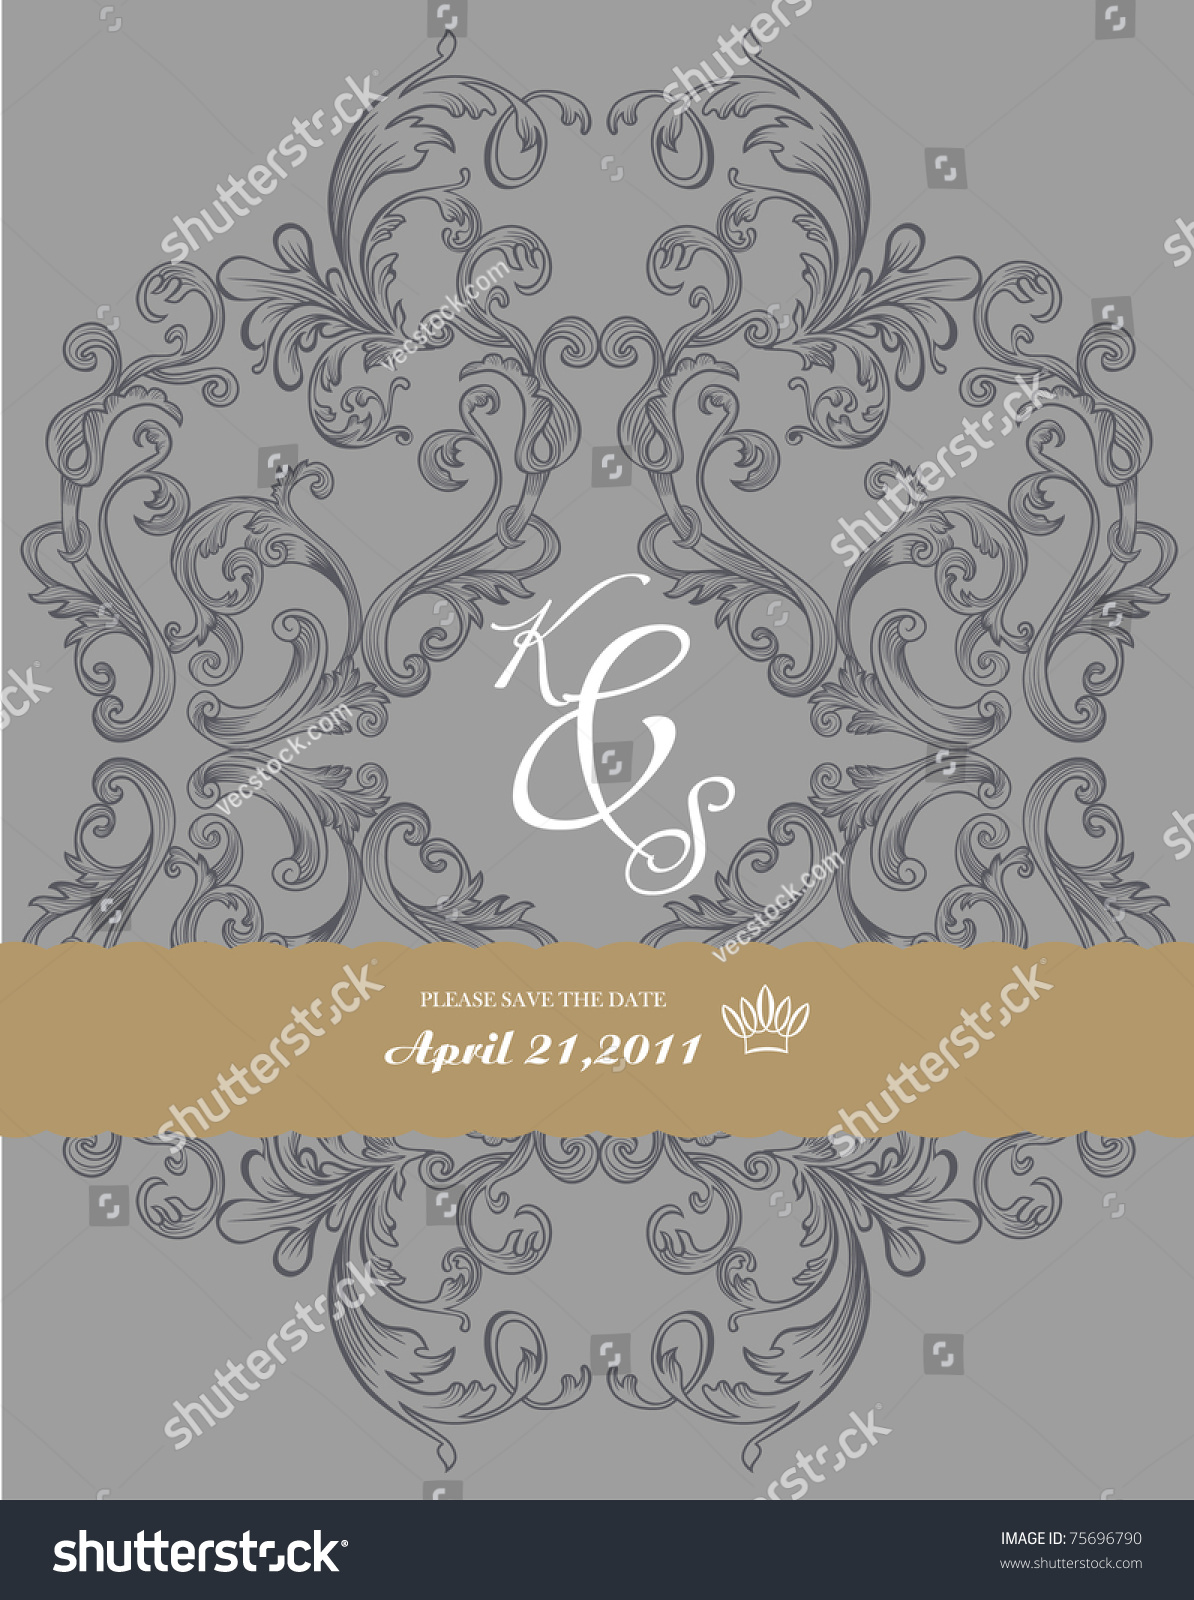 Nice Book Cover Design : Antique paper with ornate elements on dark gray background